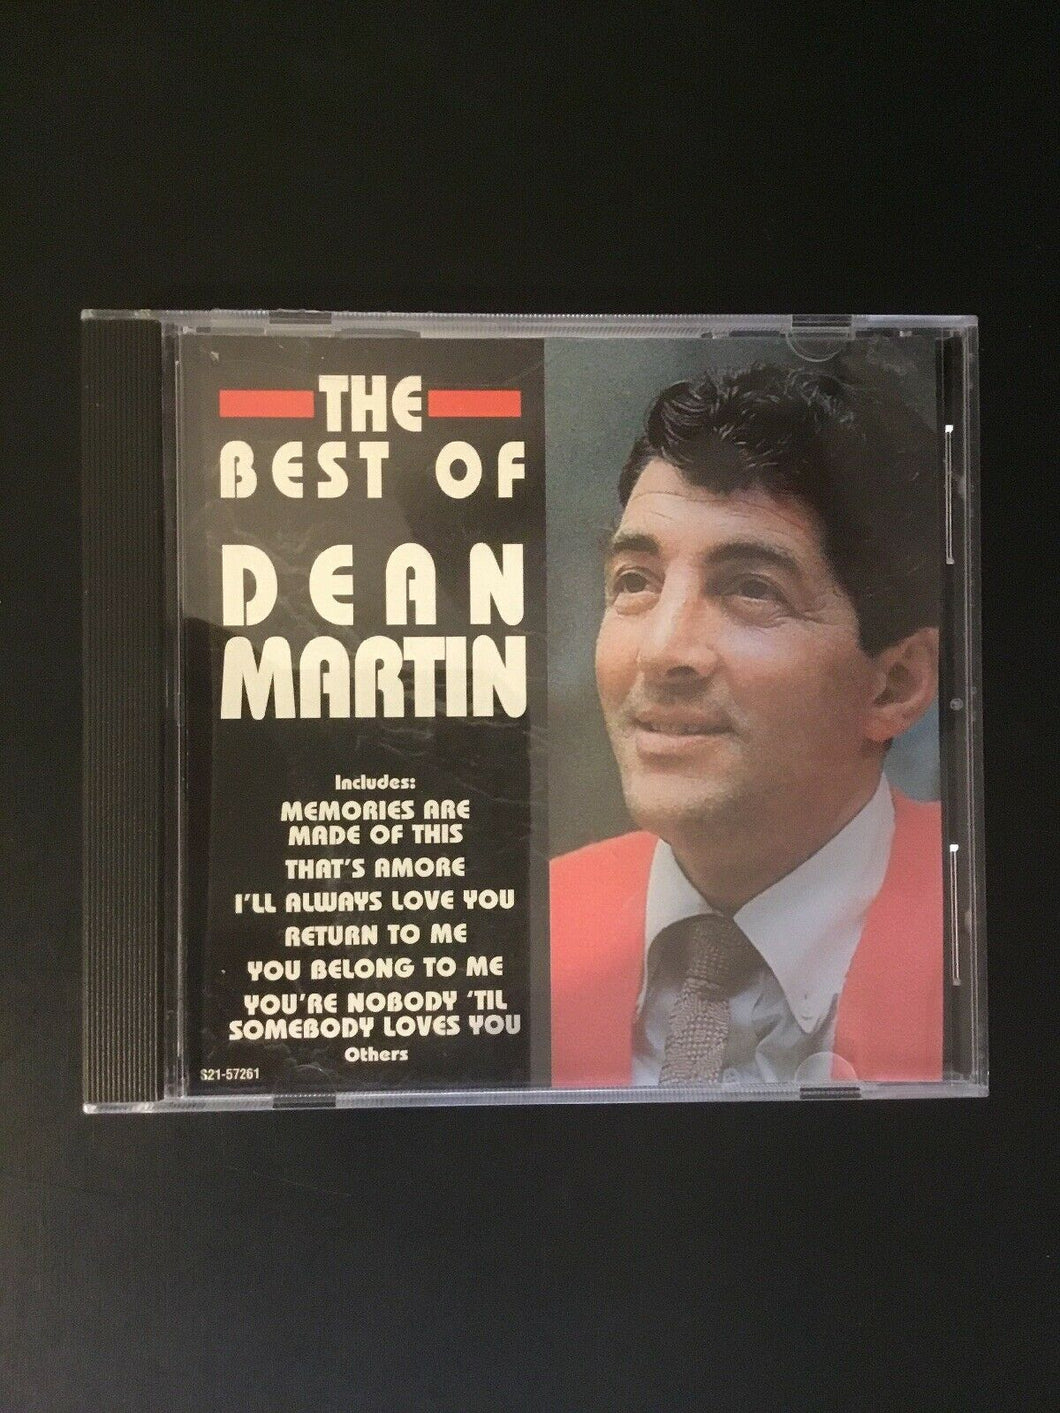 The Best of Dean Martin [Cema] by Dean Martin (CD, Mar-1997, EMI-Capitol Special